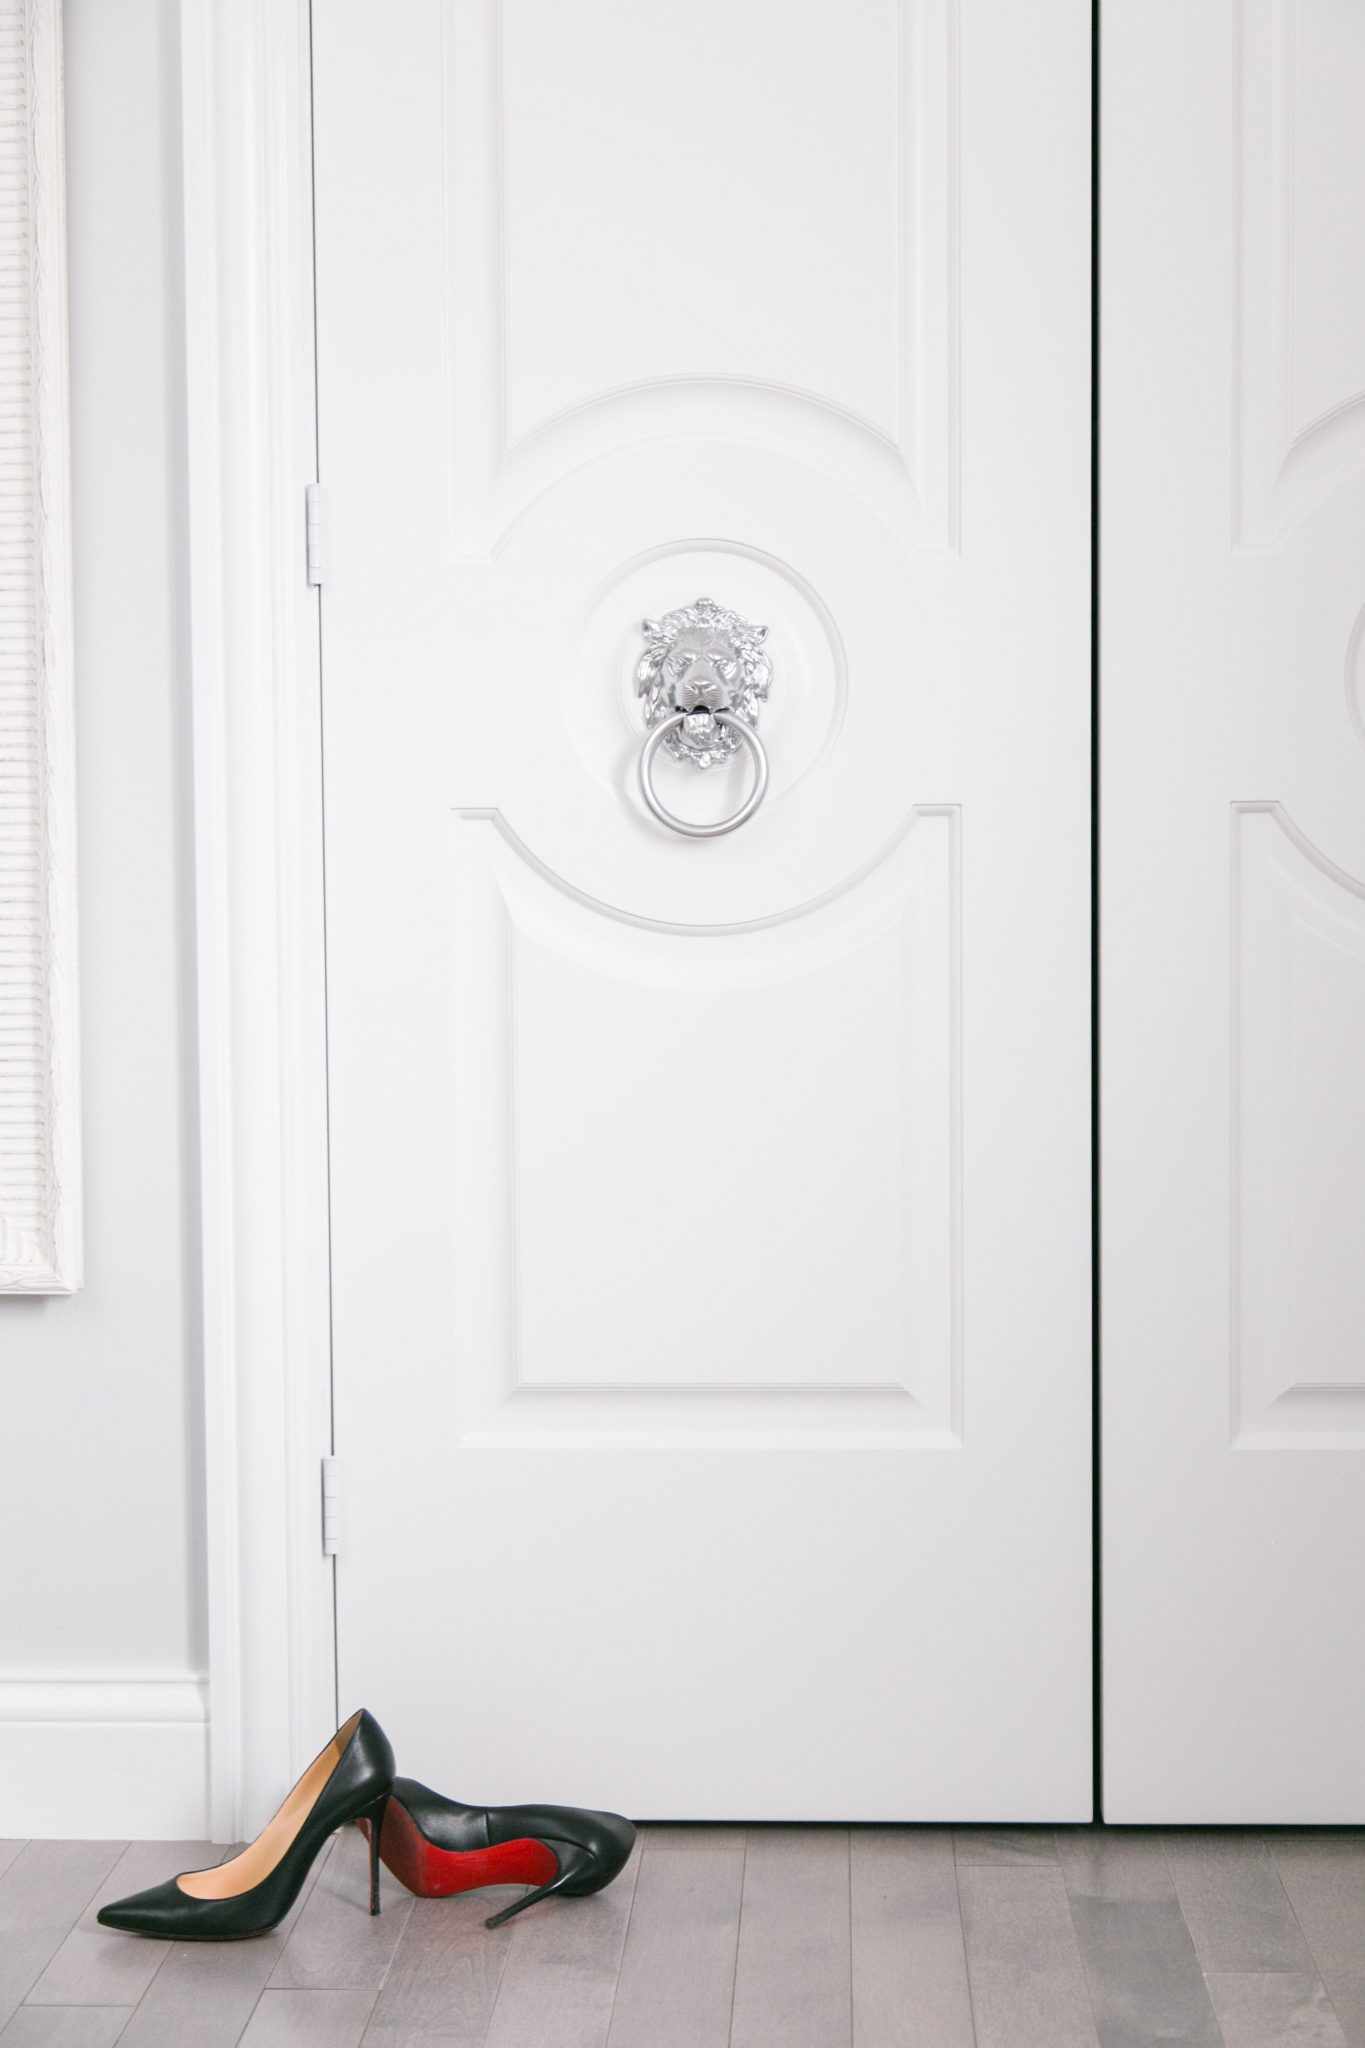 Metric Walk-In closet doors with chrome Lion Head knockers and Christian Louboutins